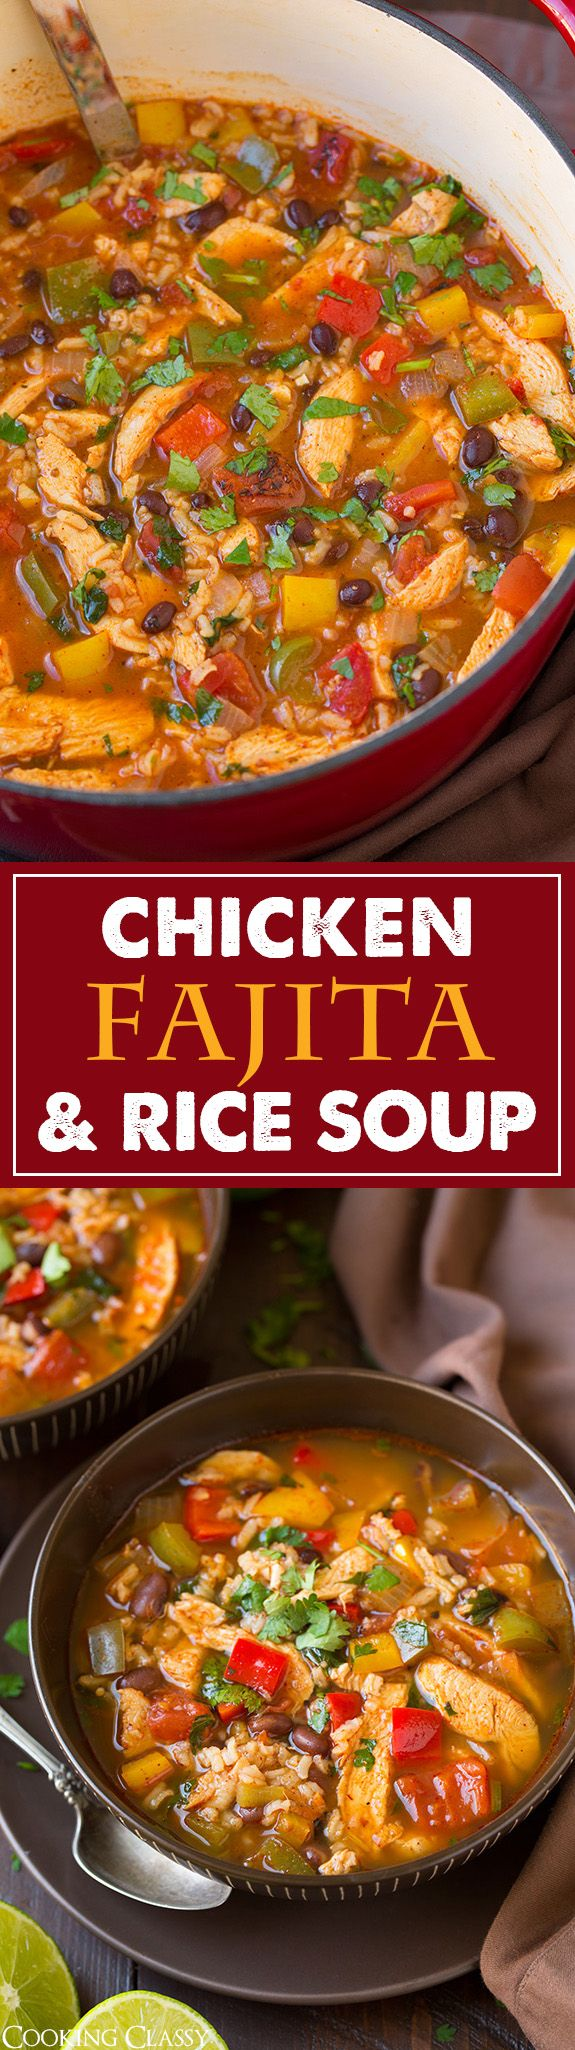 Chicken Fajita and Rice Soup - This soup tastes just like chicken fajitas but in soup form! It's so flavorful and totally filling. Just wait to add the rice if you don't plan on eating it all right away.